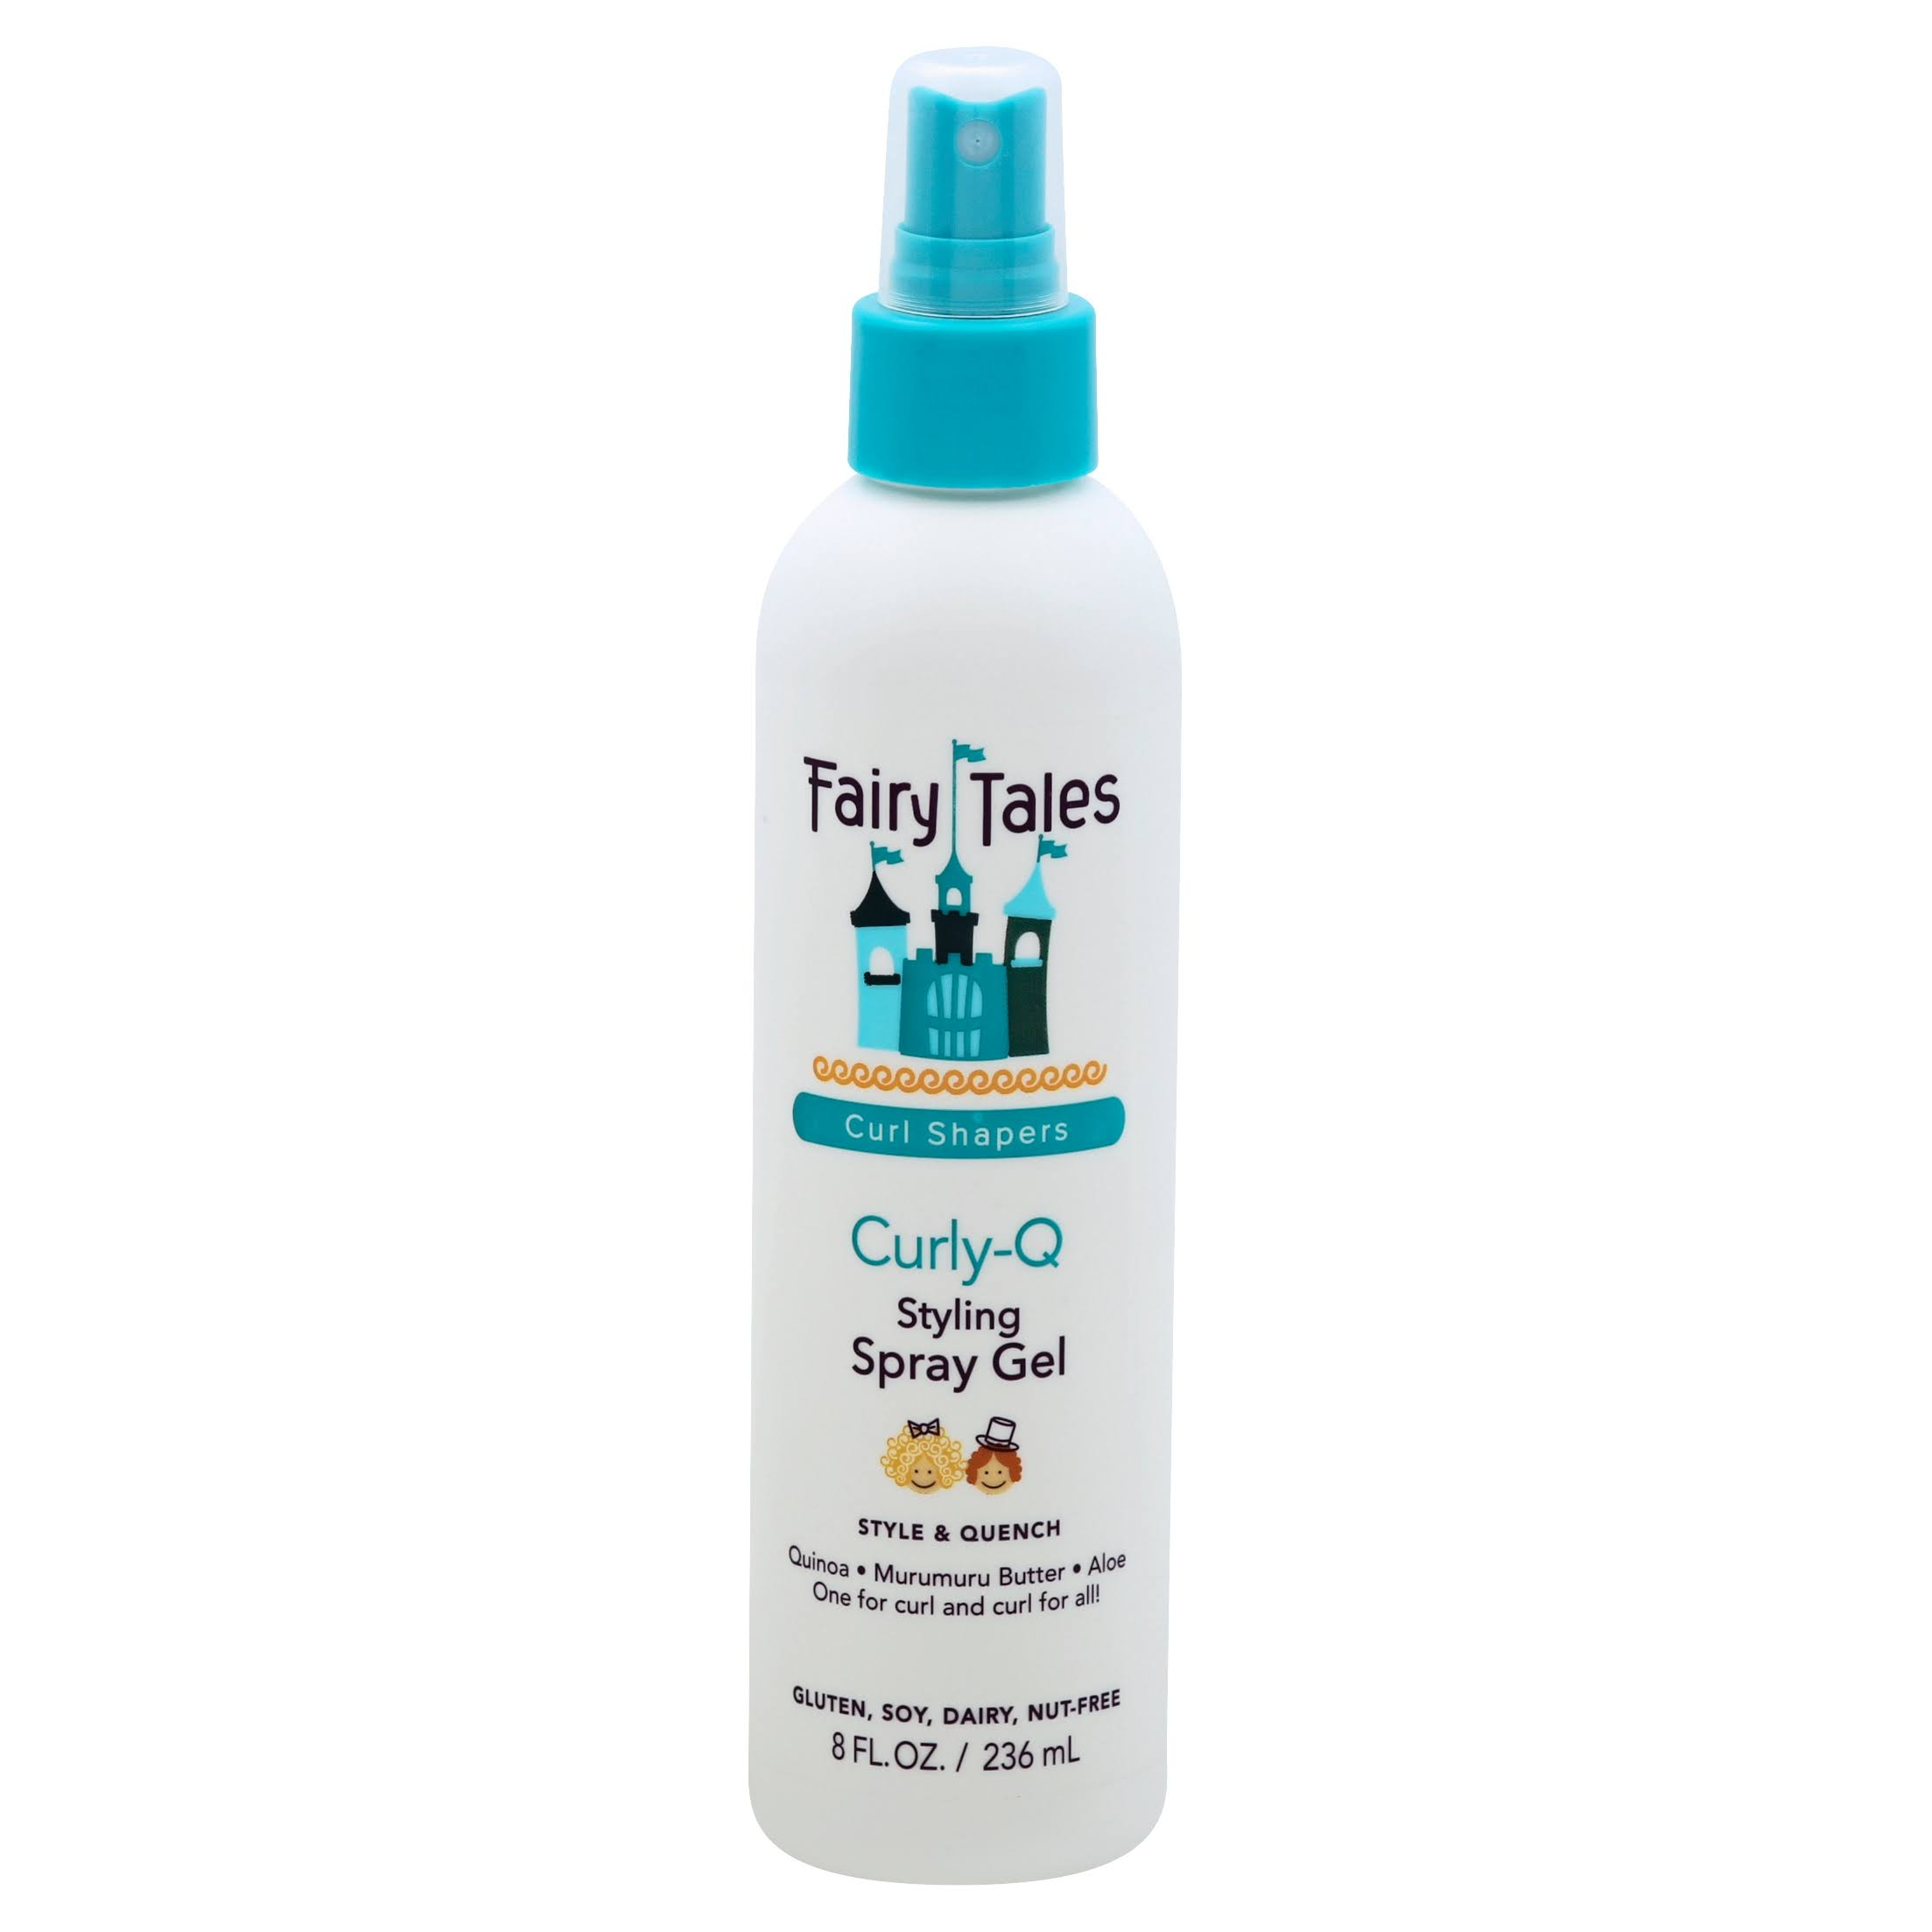 Fairy Tales Curly Q Styling Spray Gel - 8oz